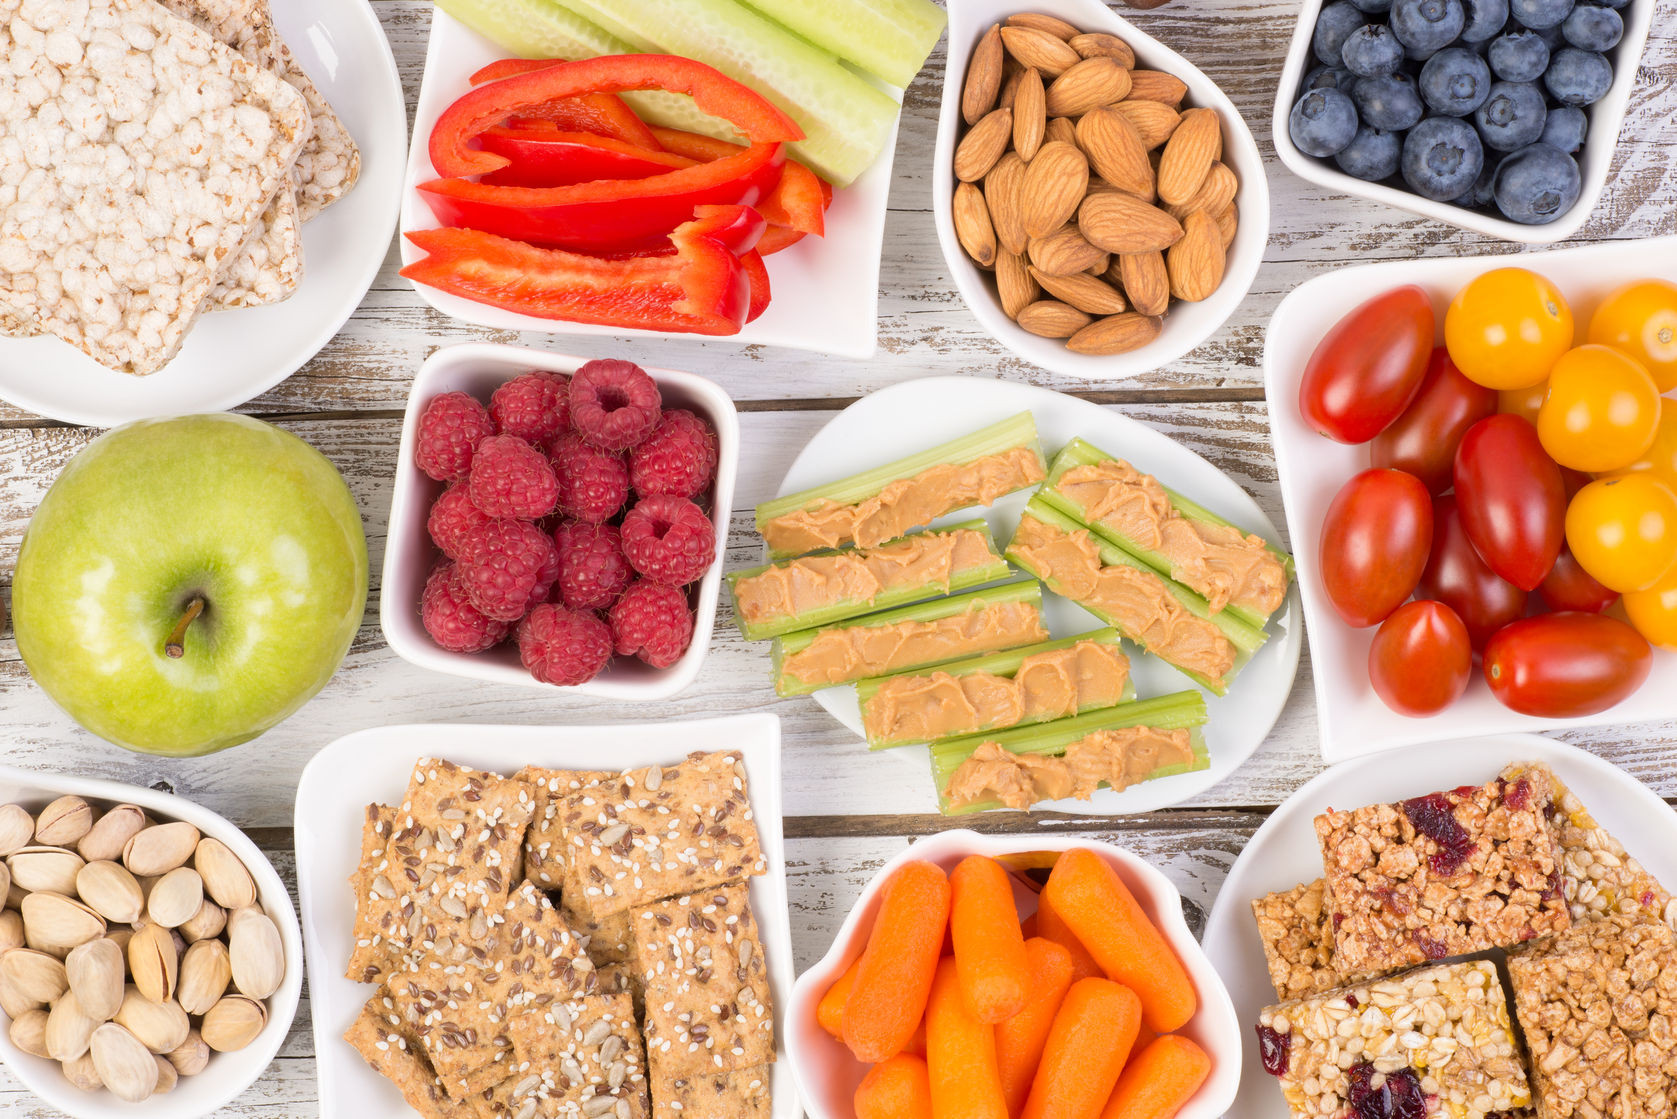 Snacks That Are Healthy  5 Healthy Snack Ideas That Require NO Skills Nutritious Life